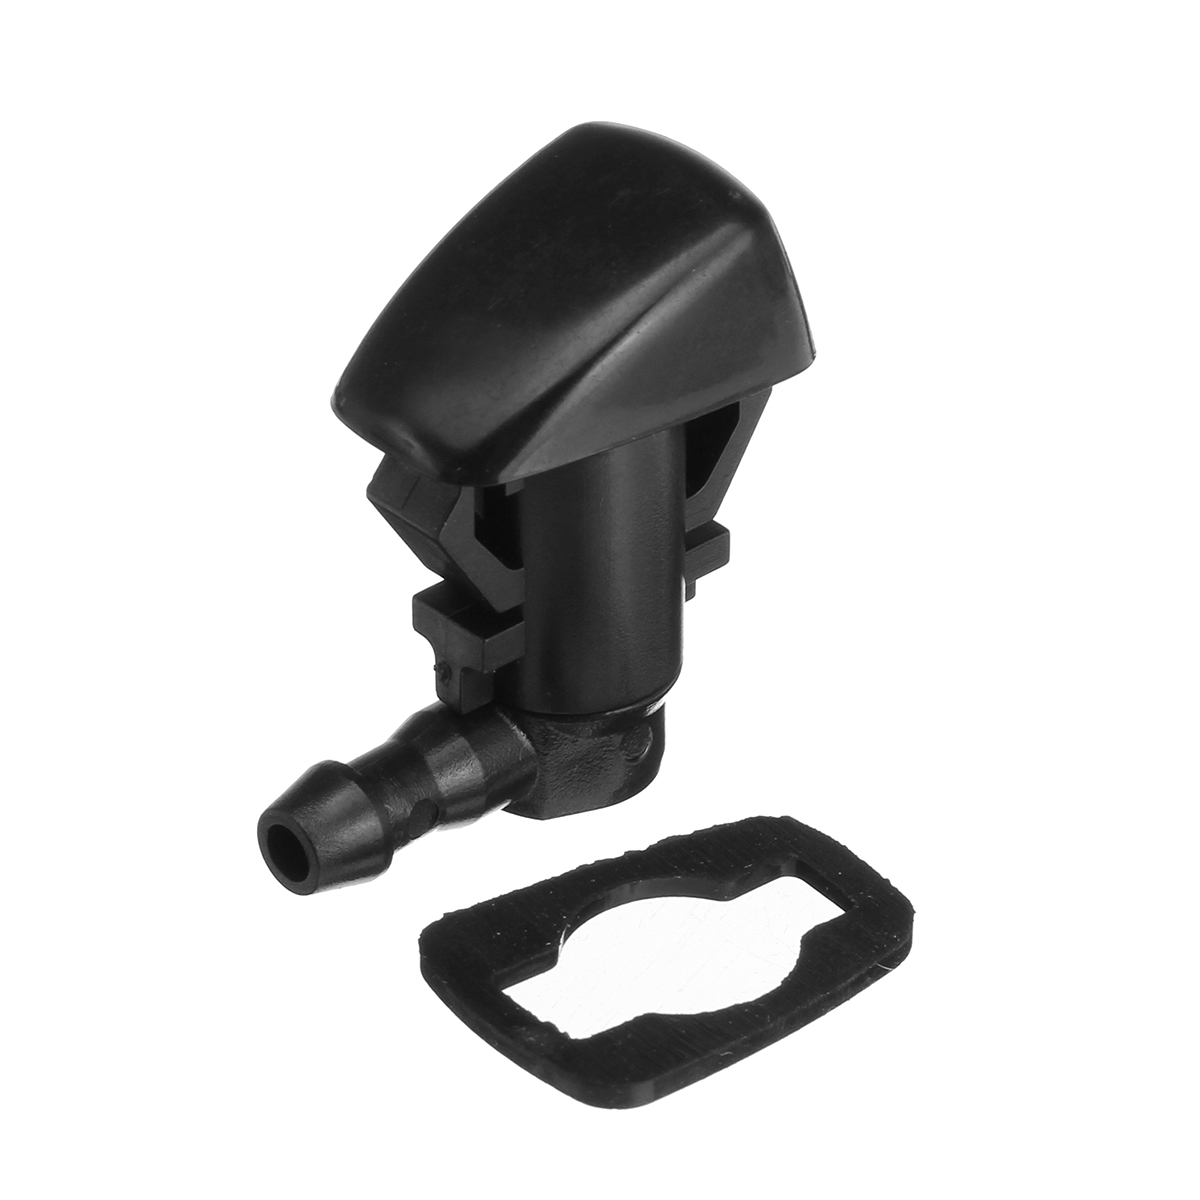 Windshield Wiper Water Spray Jet Washer Nozzle for Jeep